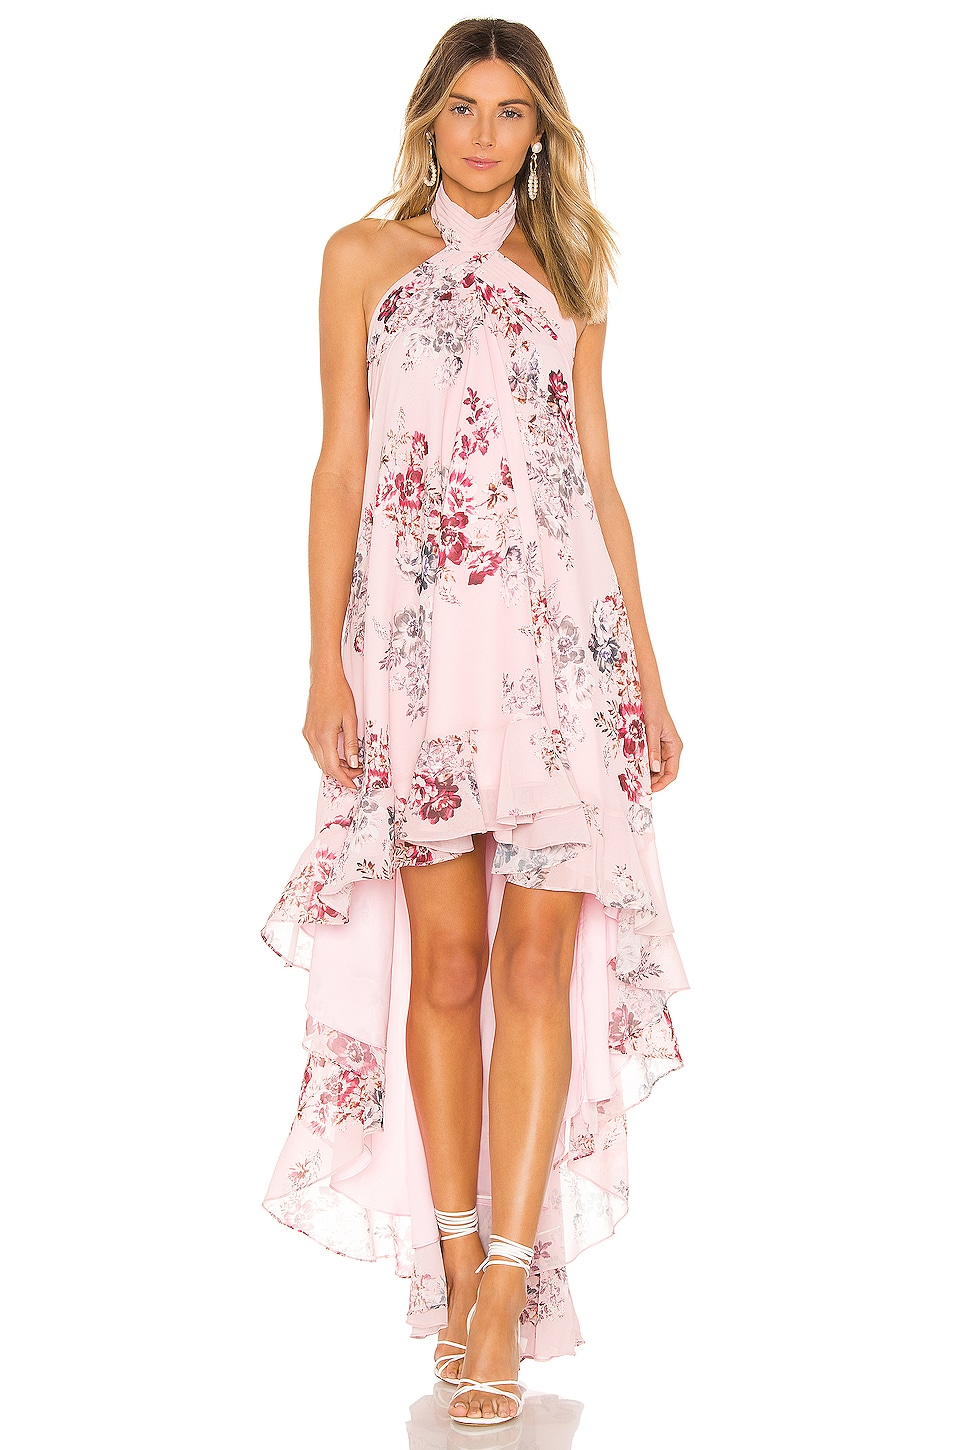 Michael Costello x REVOLVE Conrad Dress in Pink Floral